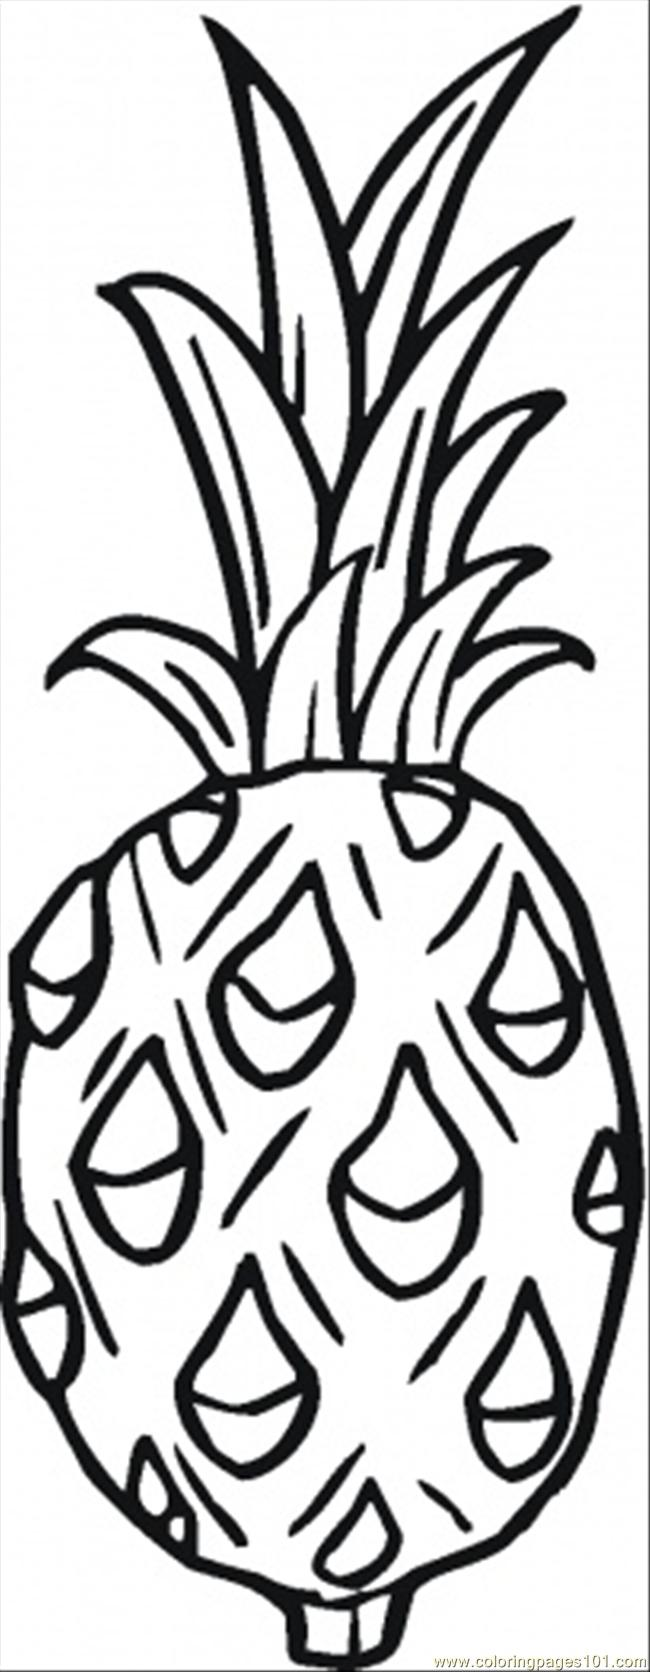 Pineapple 3 Coloring Page